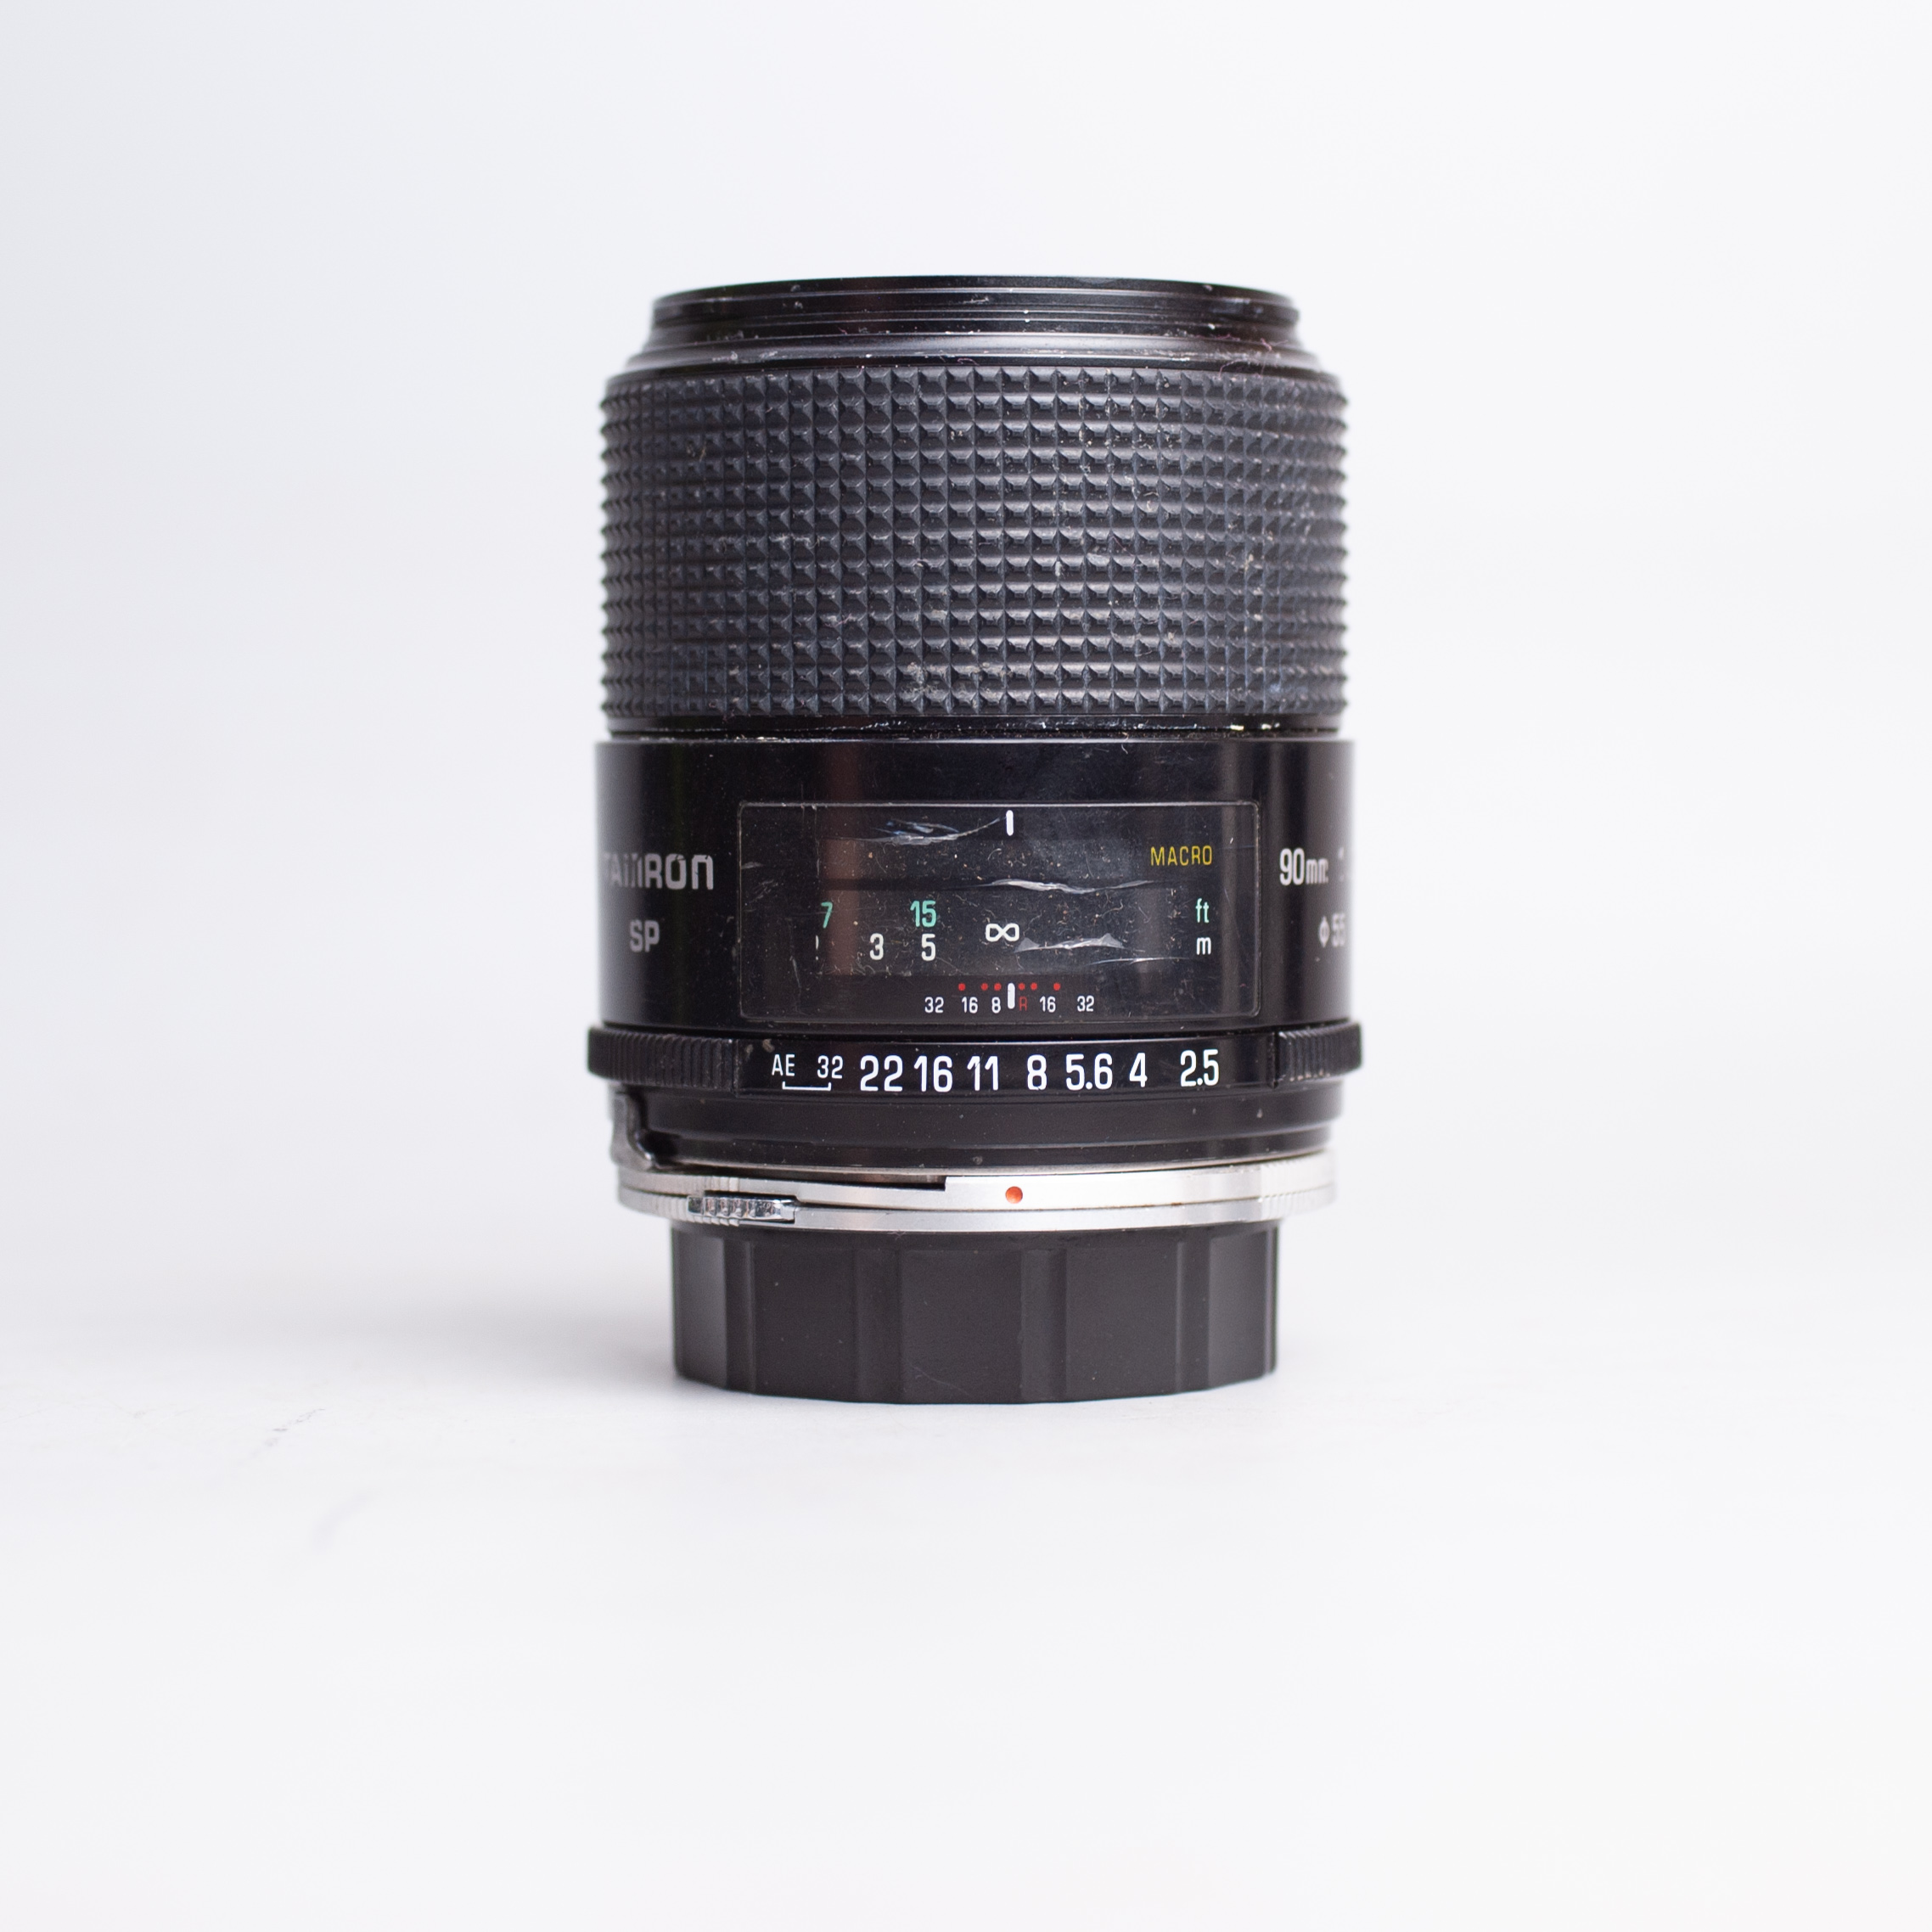 tamron-mf-adaptall-2-90mm-f2-5-macro-1-2-om-90-2-5-18512